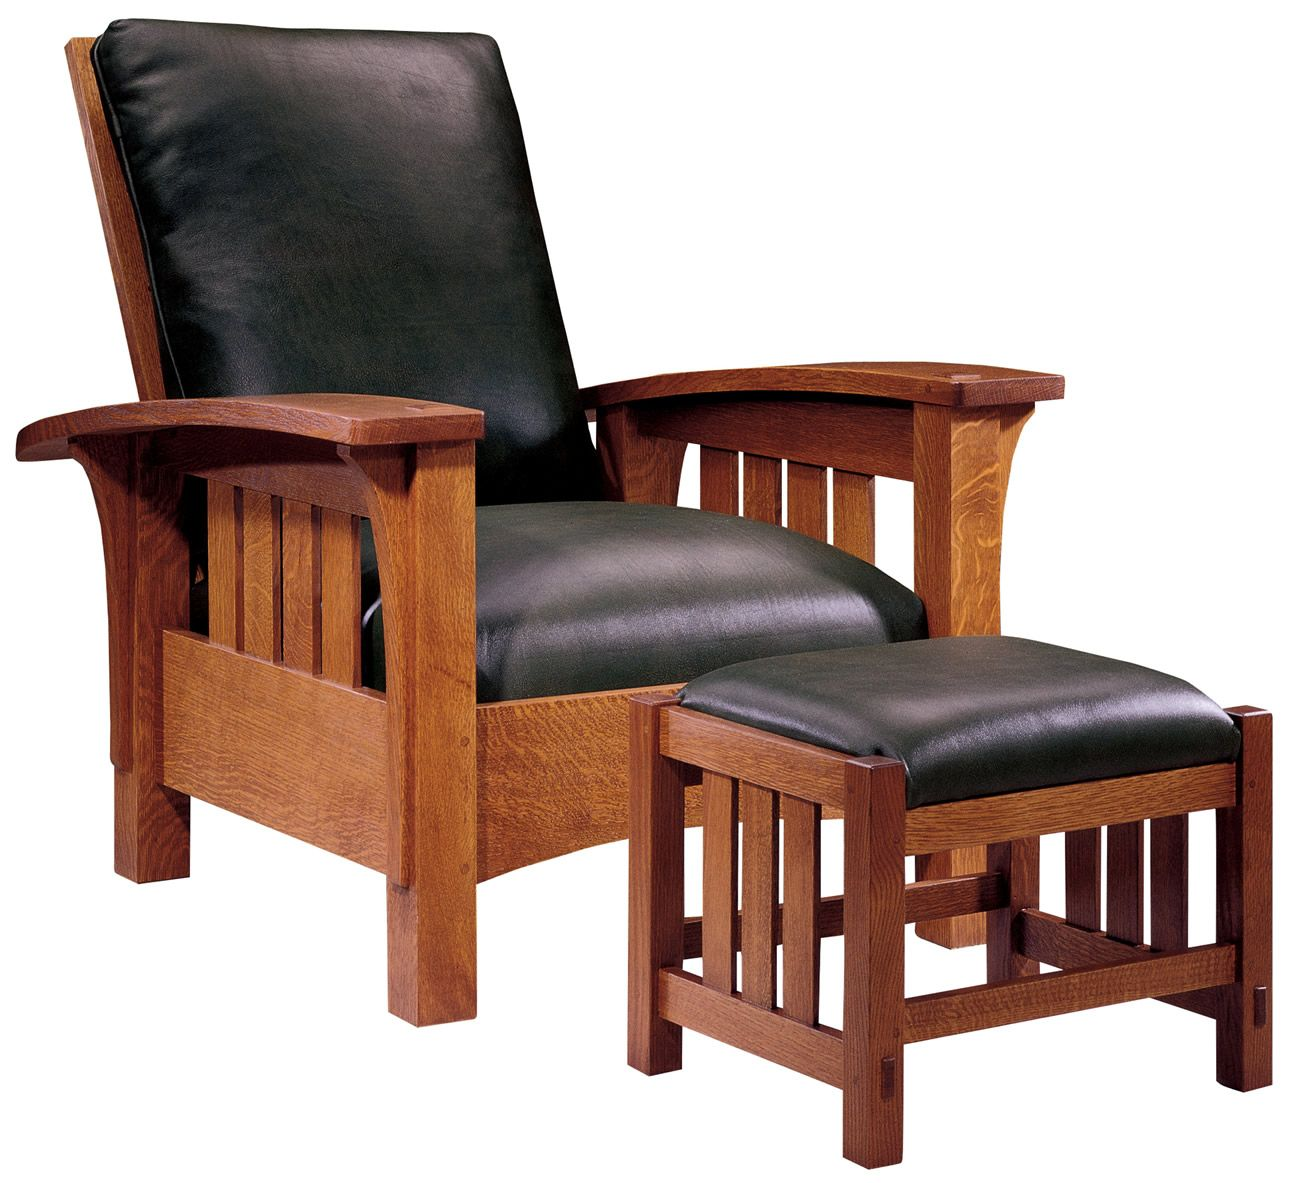 The Official Website Of Stickley Furniture Headquartered In Manlius New York Usa Stick Mission Style Furniture American Furniture Design Craftsman Furniture